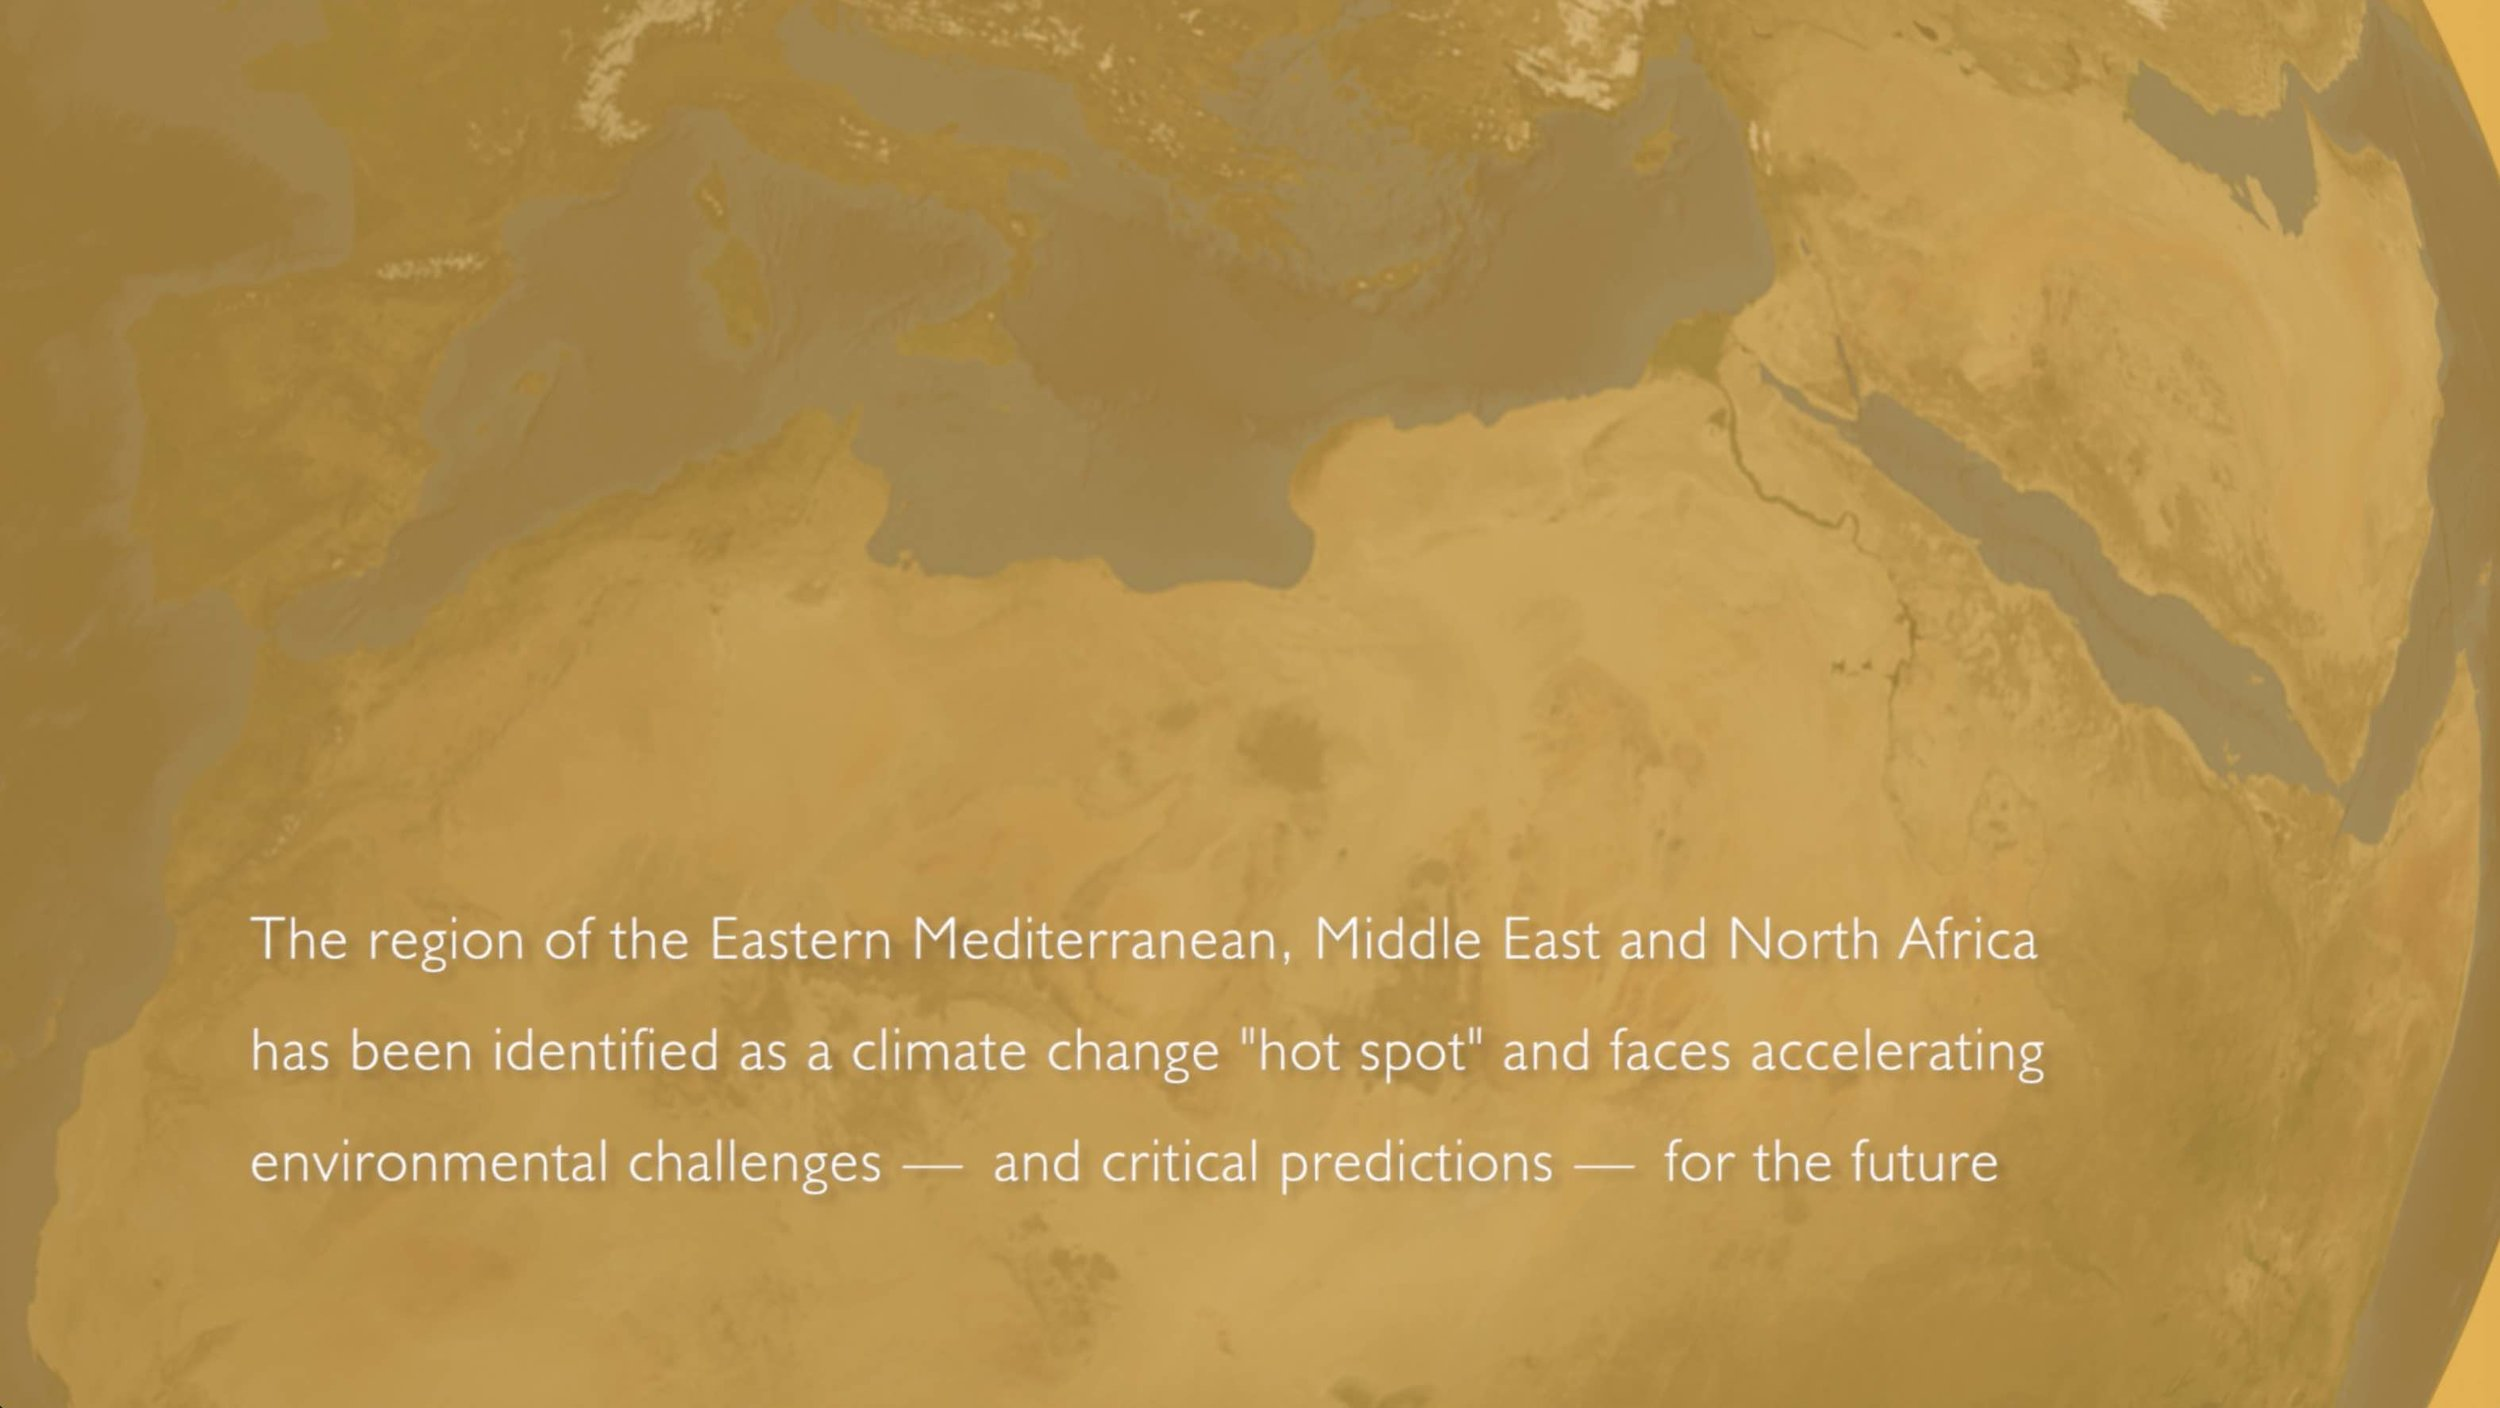 ...the region's climate change challenges